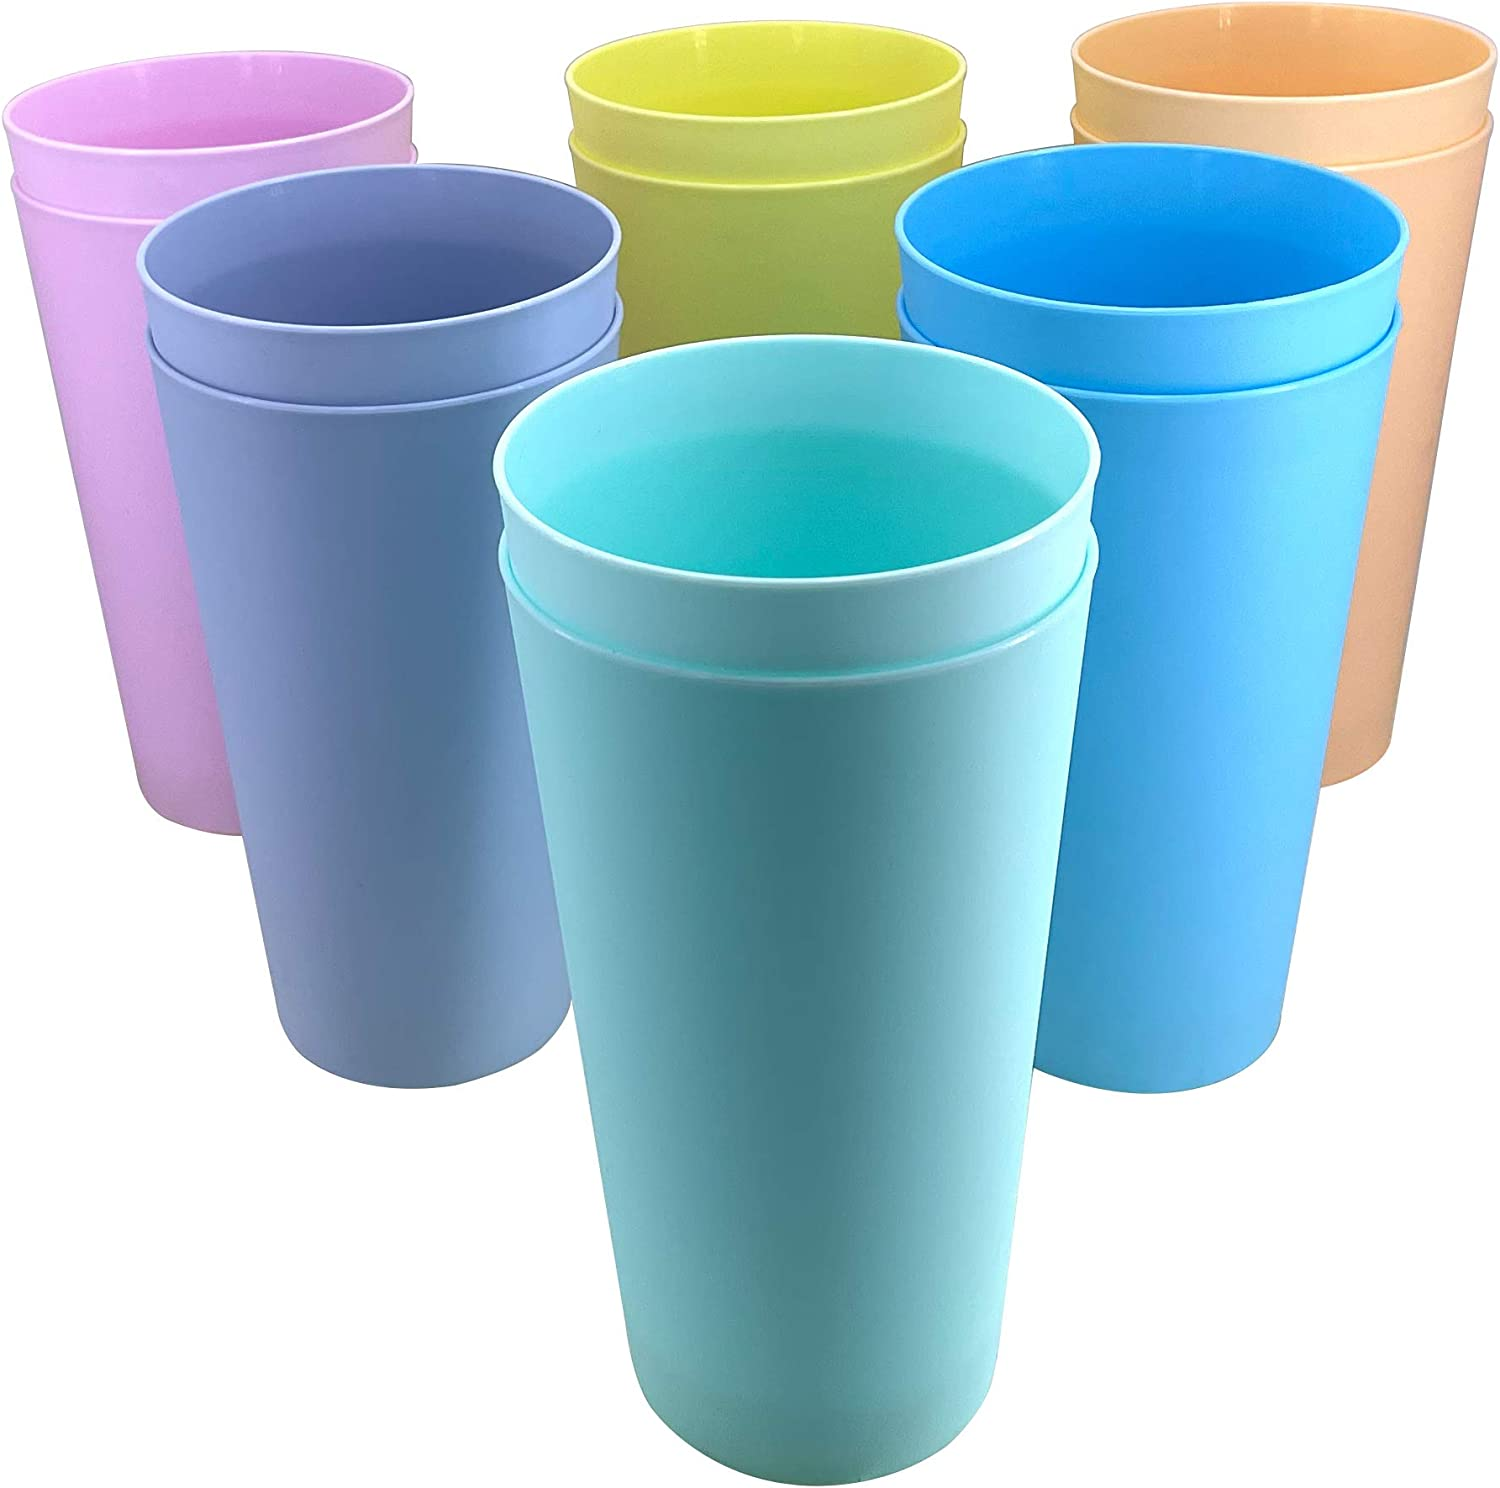 32-ounce Plastic Tumblers ,Large Drinking Cups BPA-free Reusable Dishwasher Safe 6 Assorted Colors Set of 12